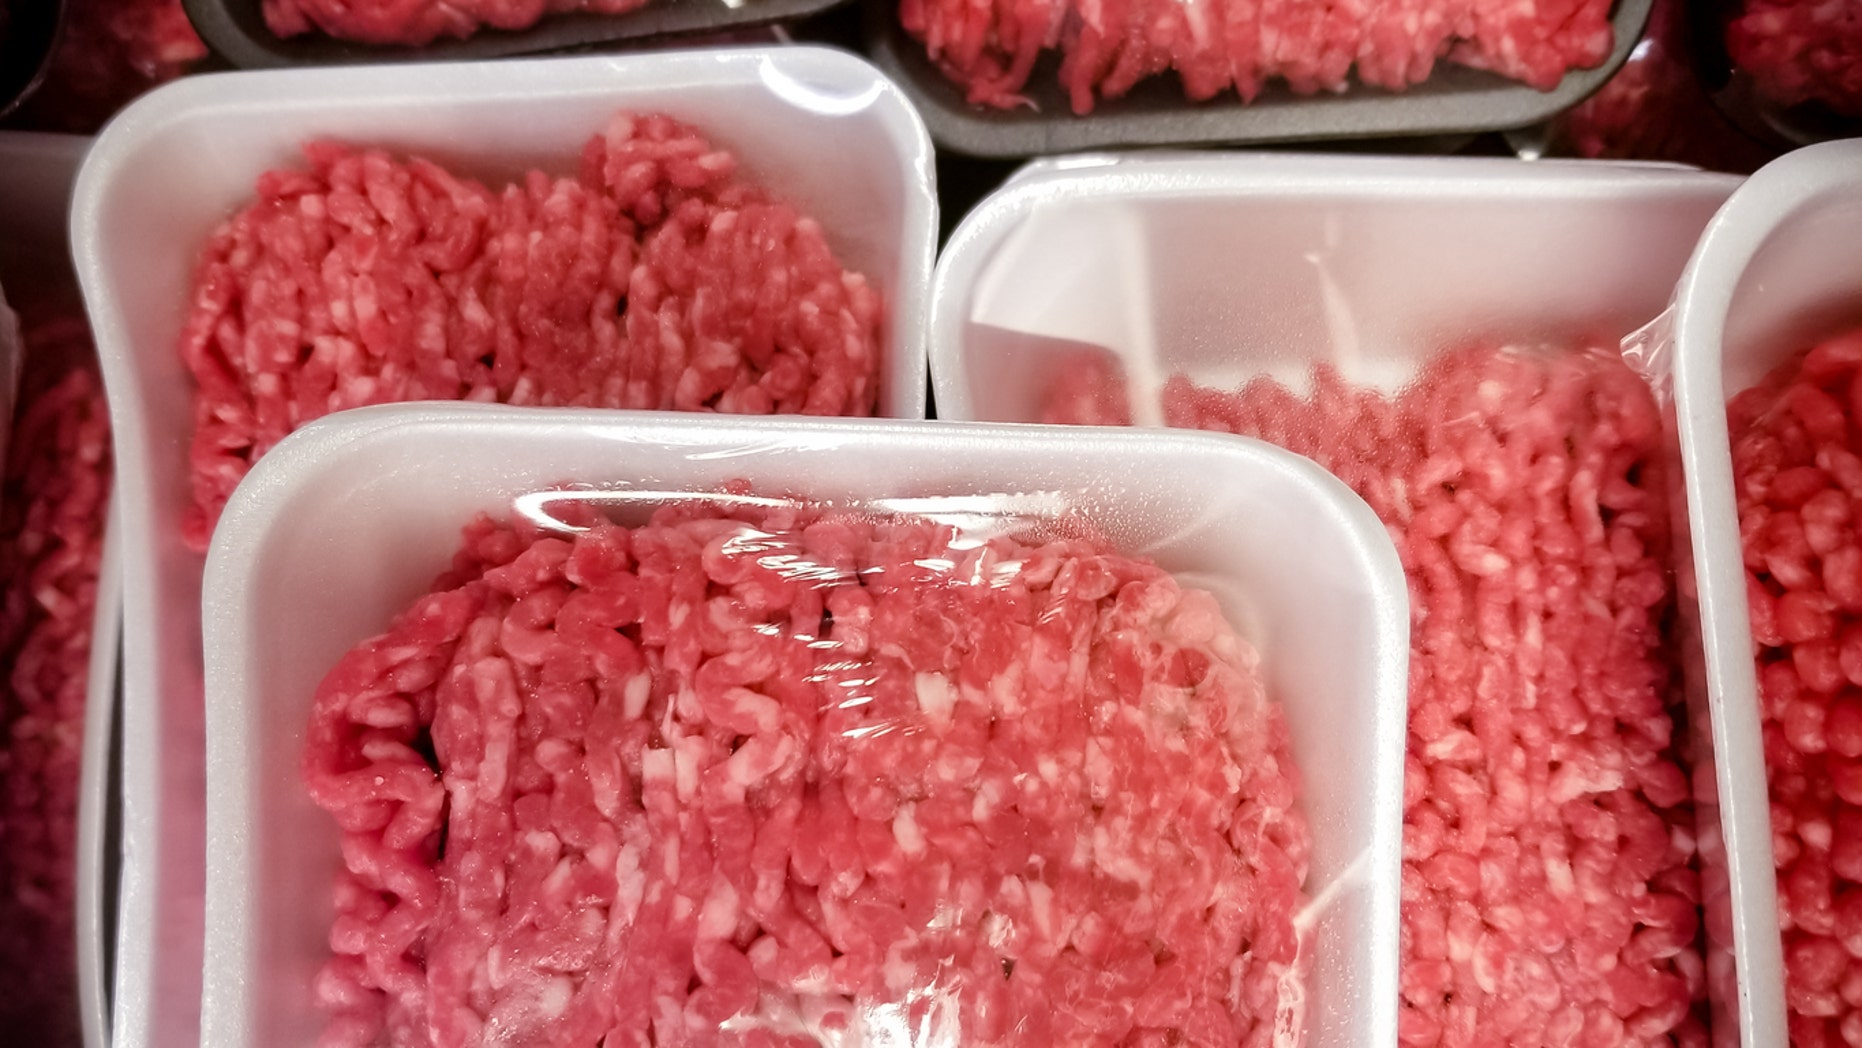 CDC suspects ground beef source of 6-state E. coli outbreak